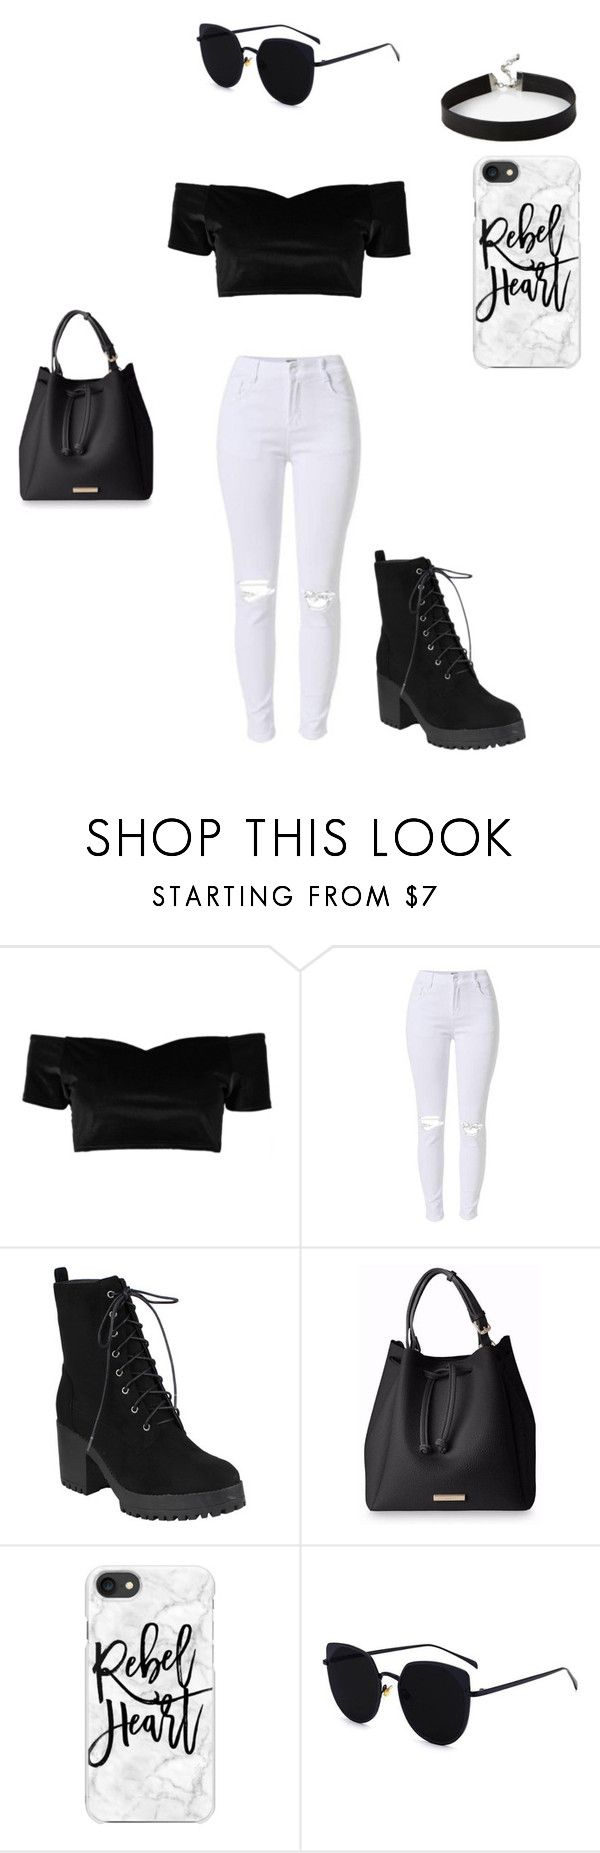 """Rebel heart..."" by hali103 ❤ liked on Polyvore featuring Boohoo, Casetify and Express"